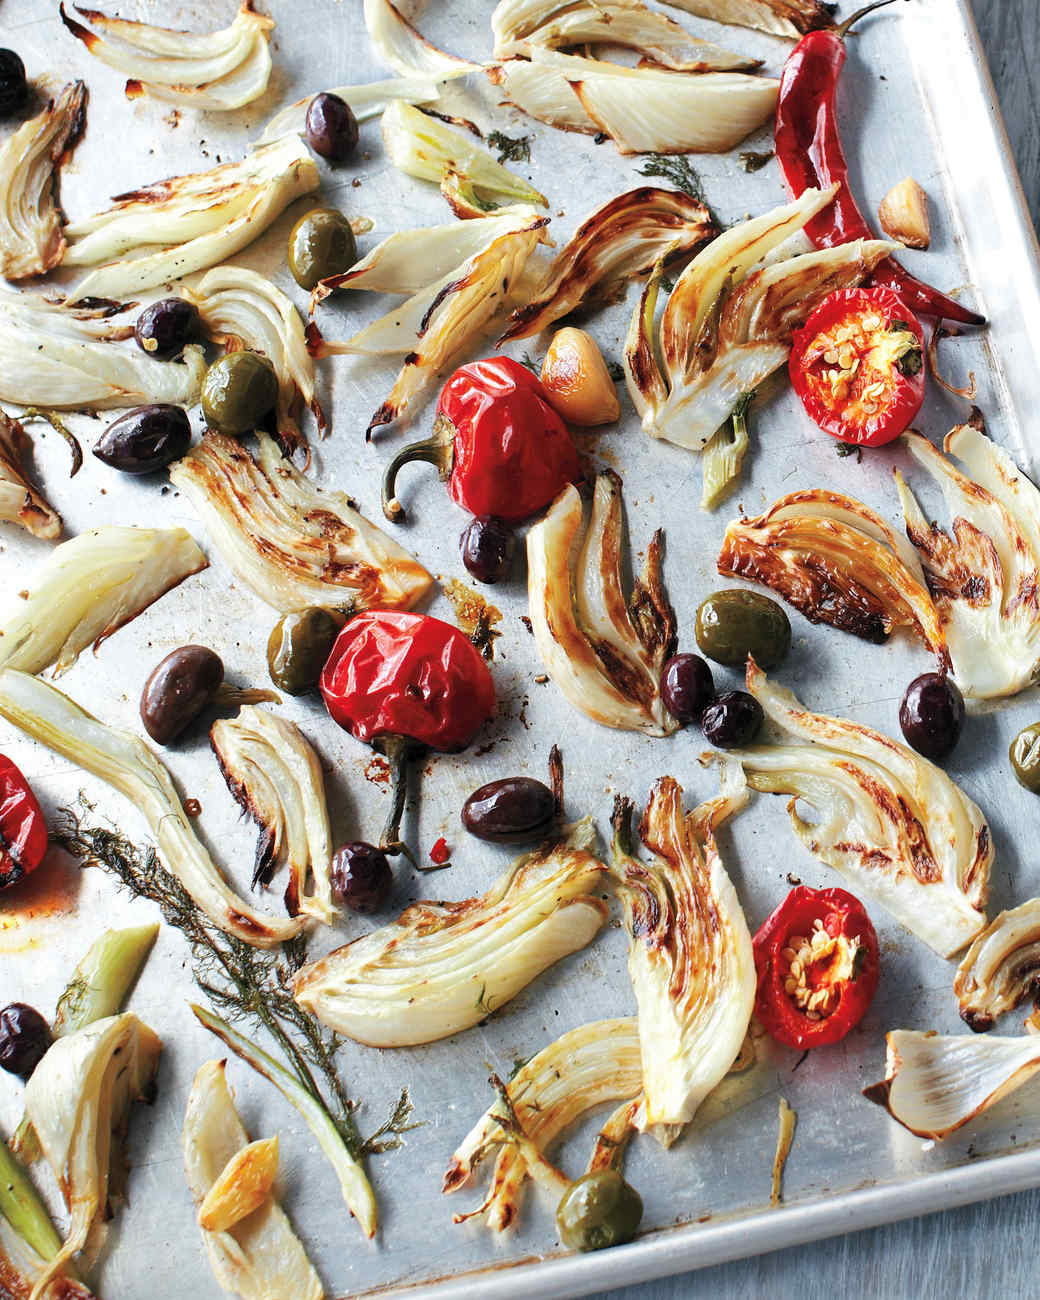 fennel-olives-tomatoes-mld109446.jpg